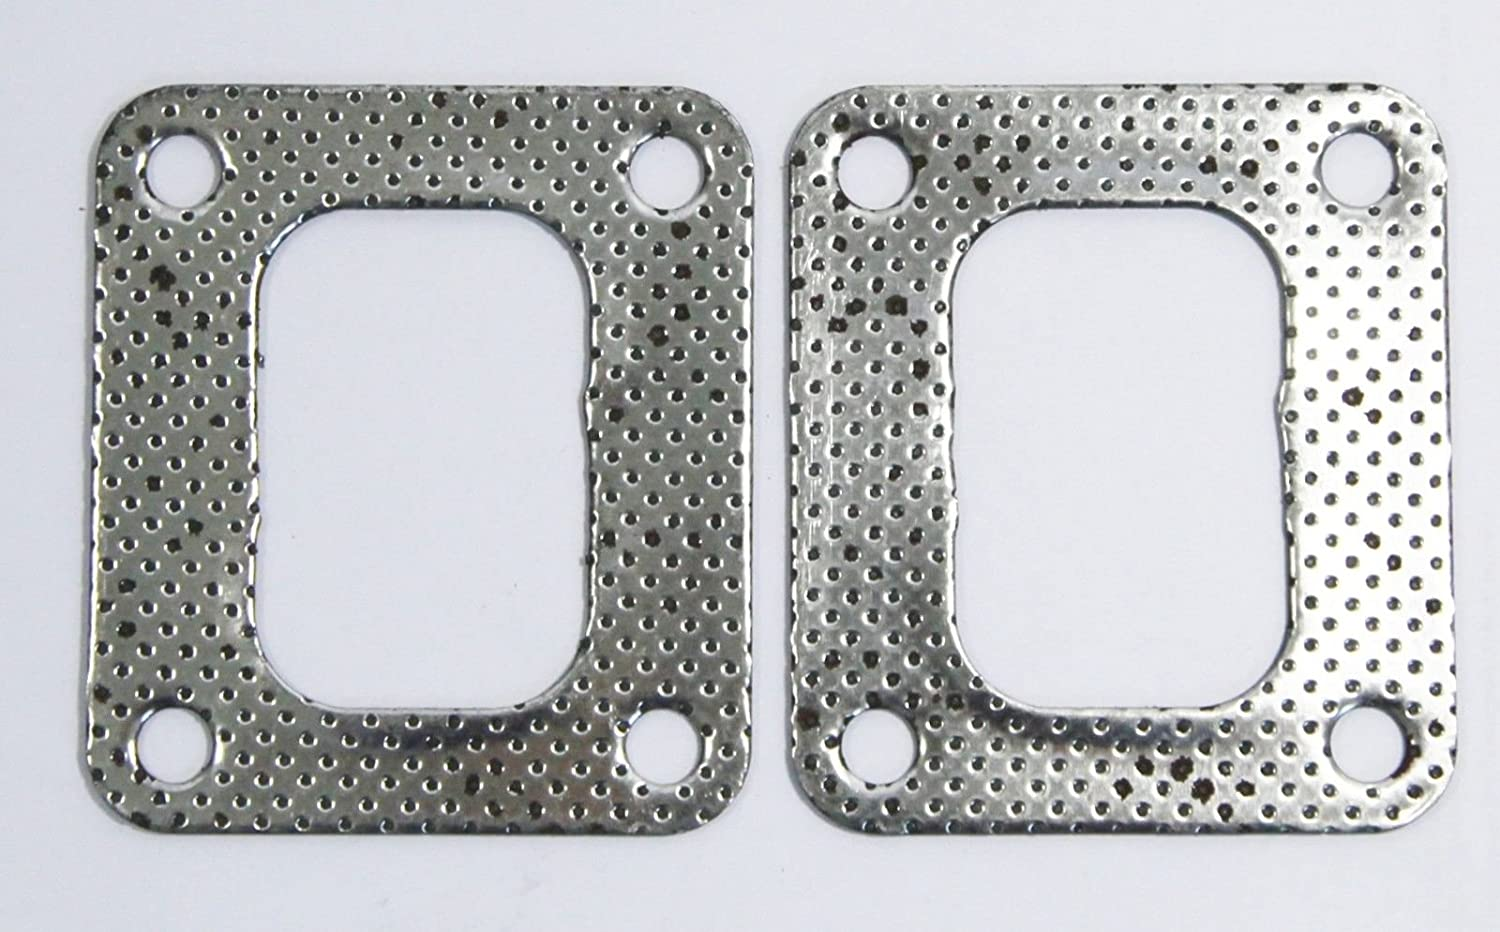 2 PCS Universal Now on sale T4 Gasket All stores are sold Turbos T04R T04Z T66 T6 60-1 62-1